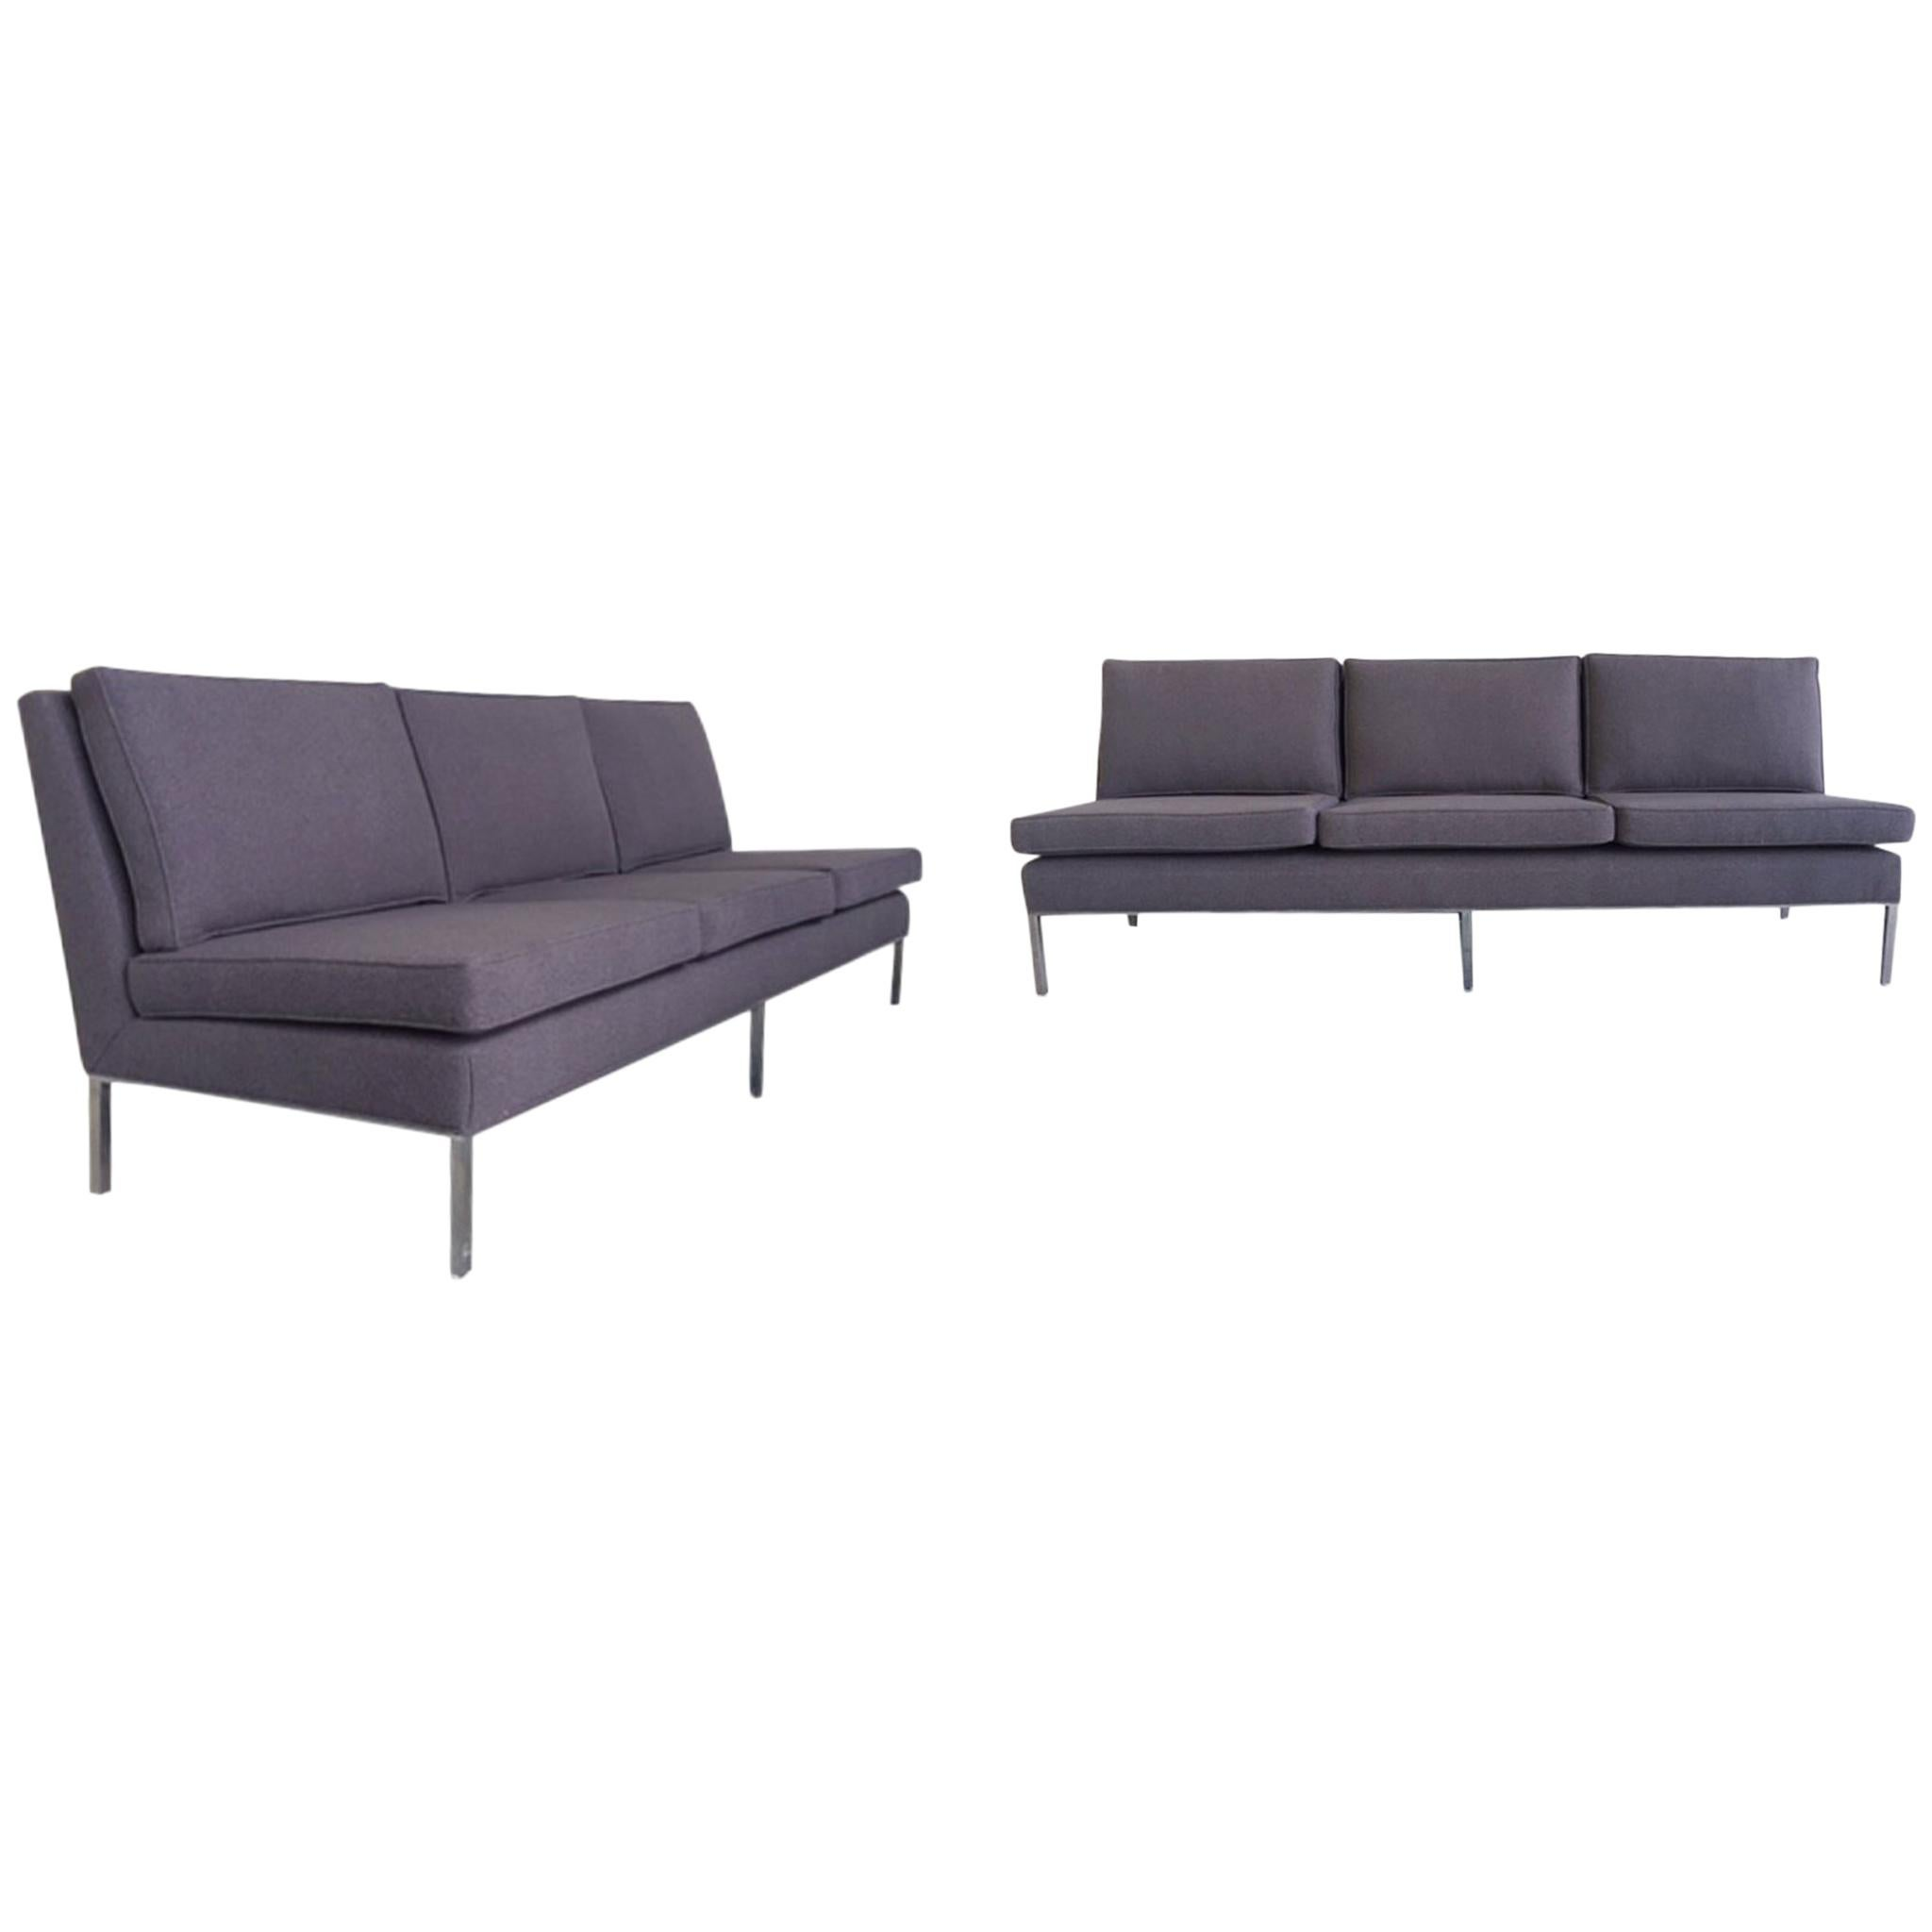 Midcentury Florence Knoll Armless Sofas, A Pair For Sale